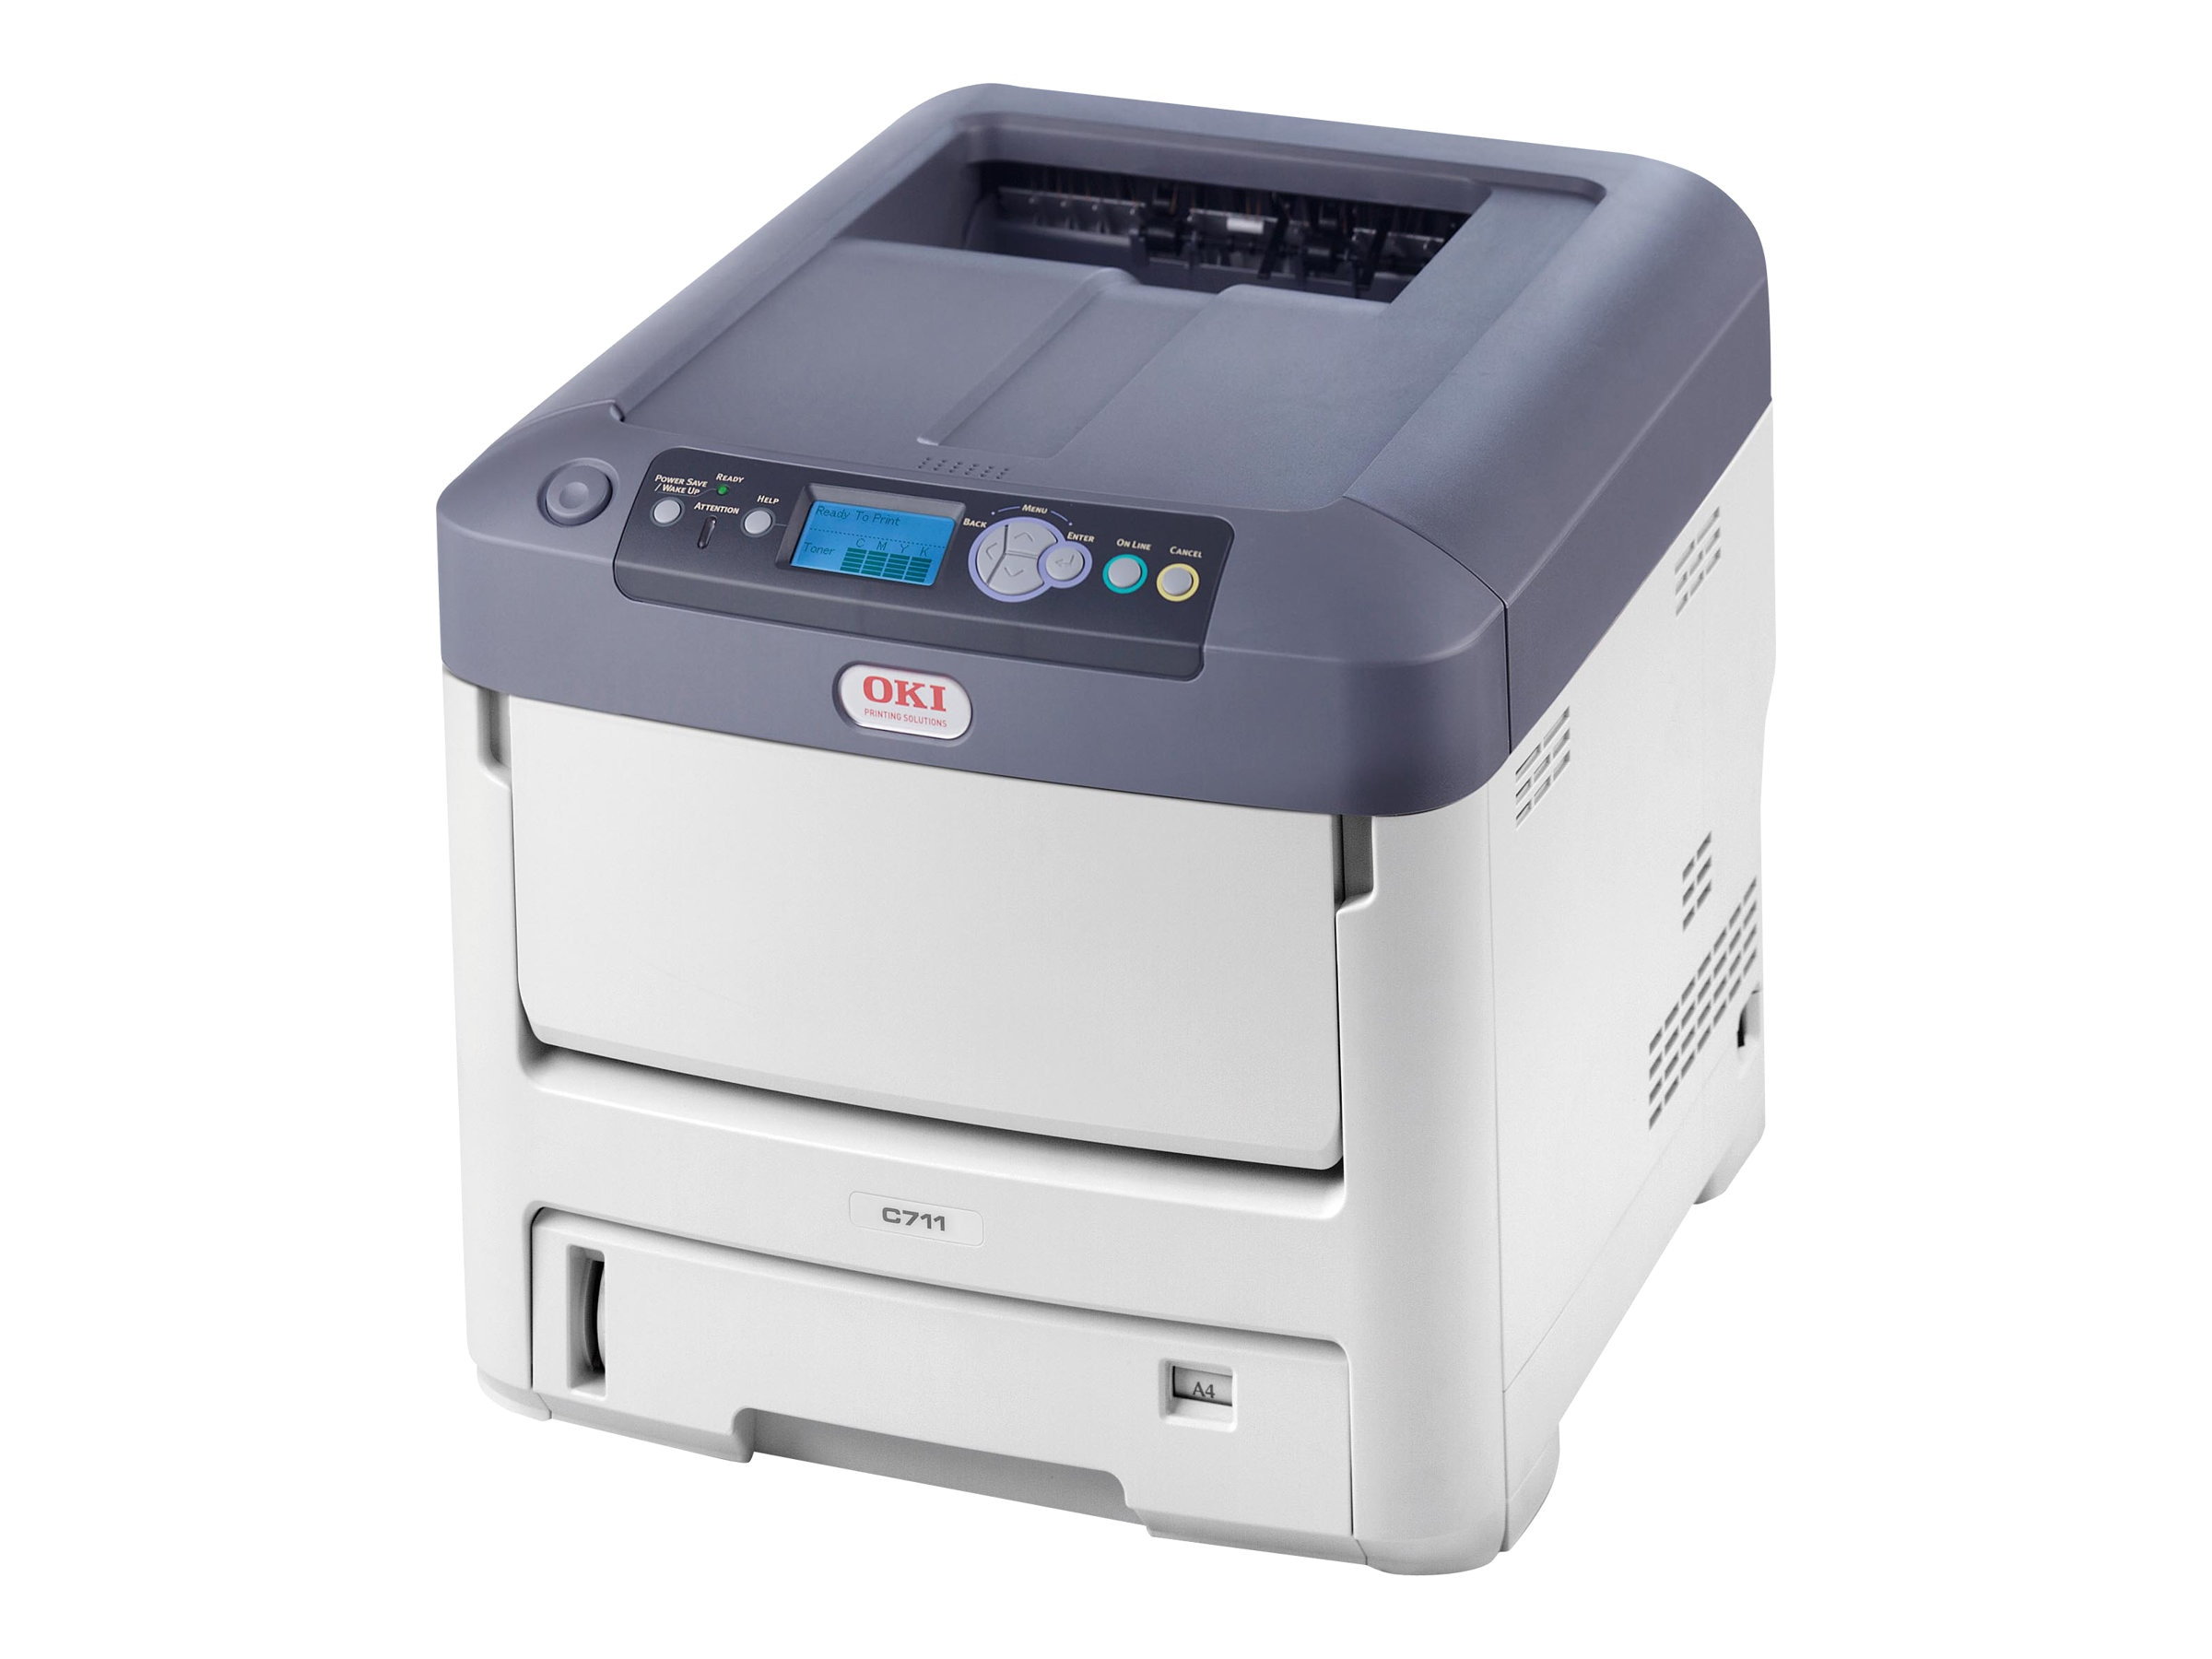 Oki C711dn Digital Color Printer